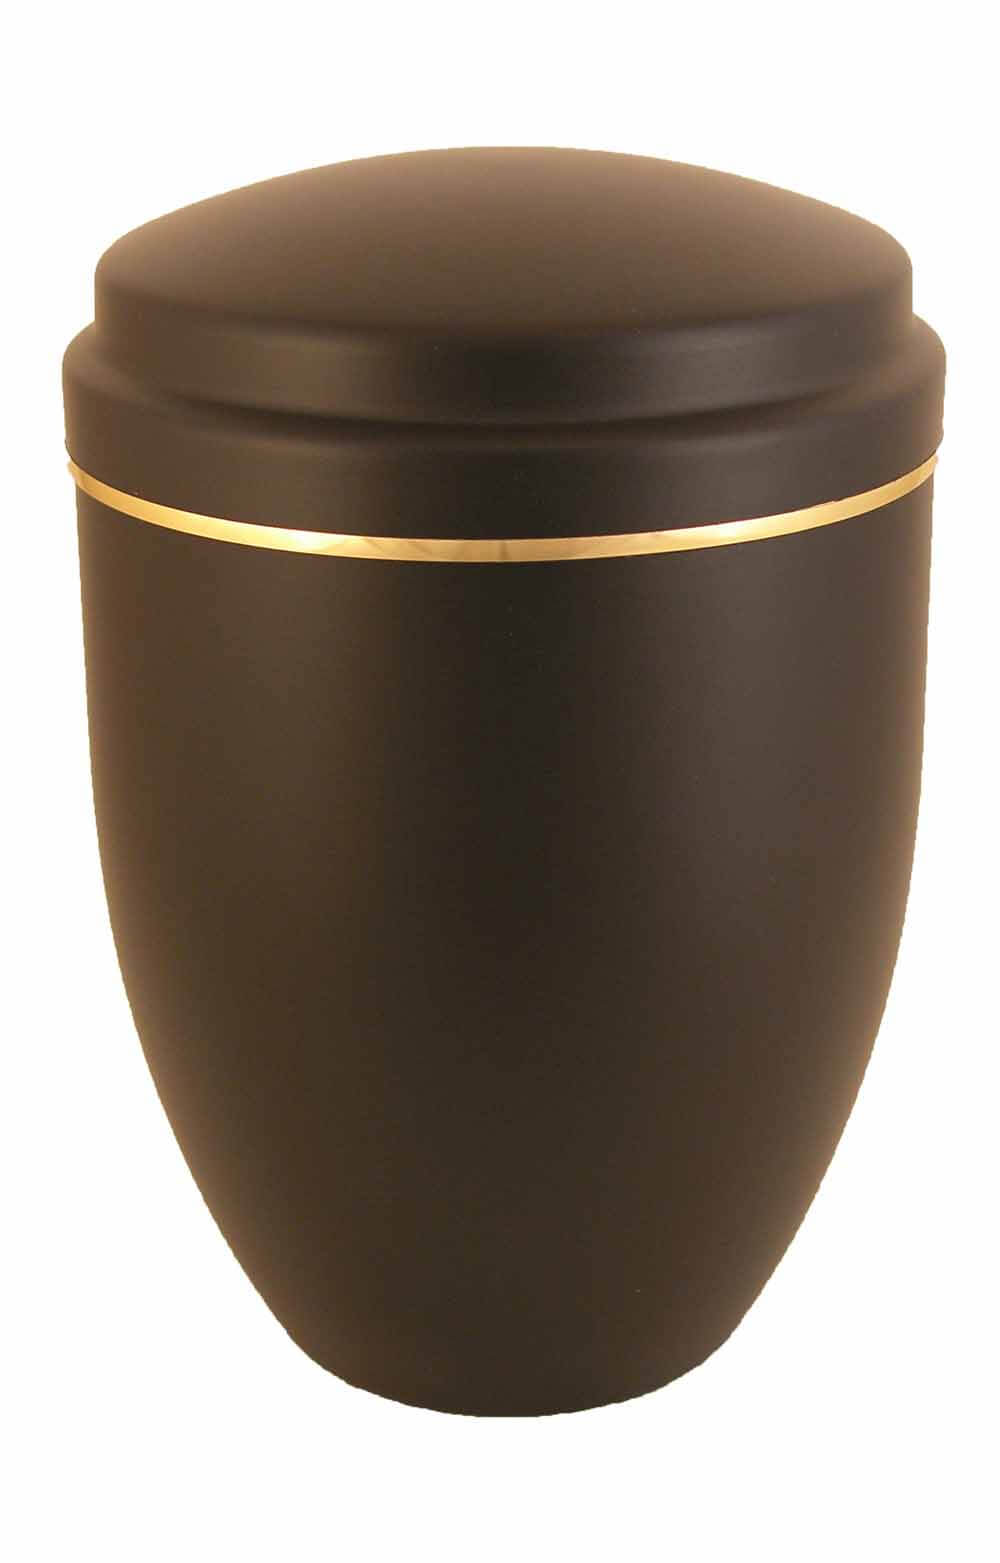 en AS5556 metall urn metall urn funeral urns on sale black traditional night